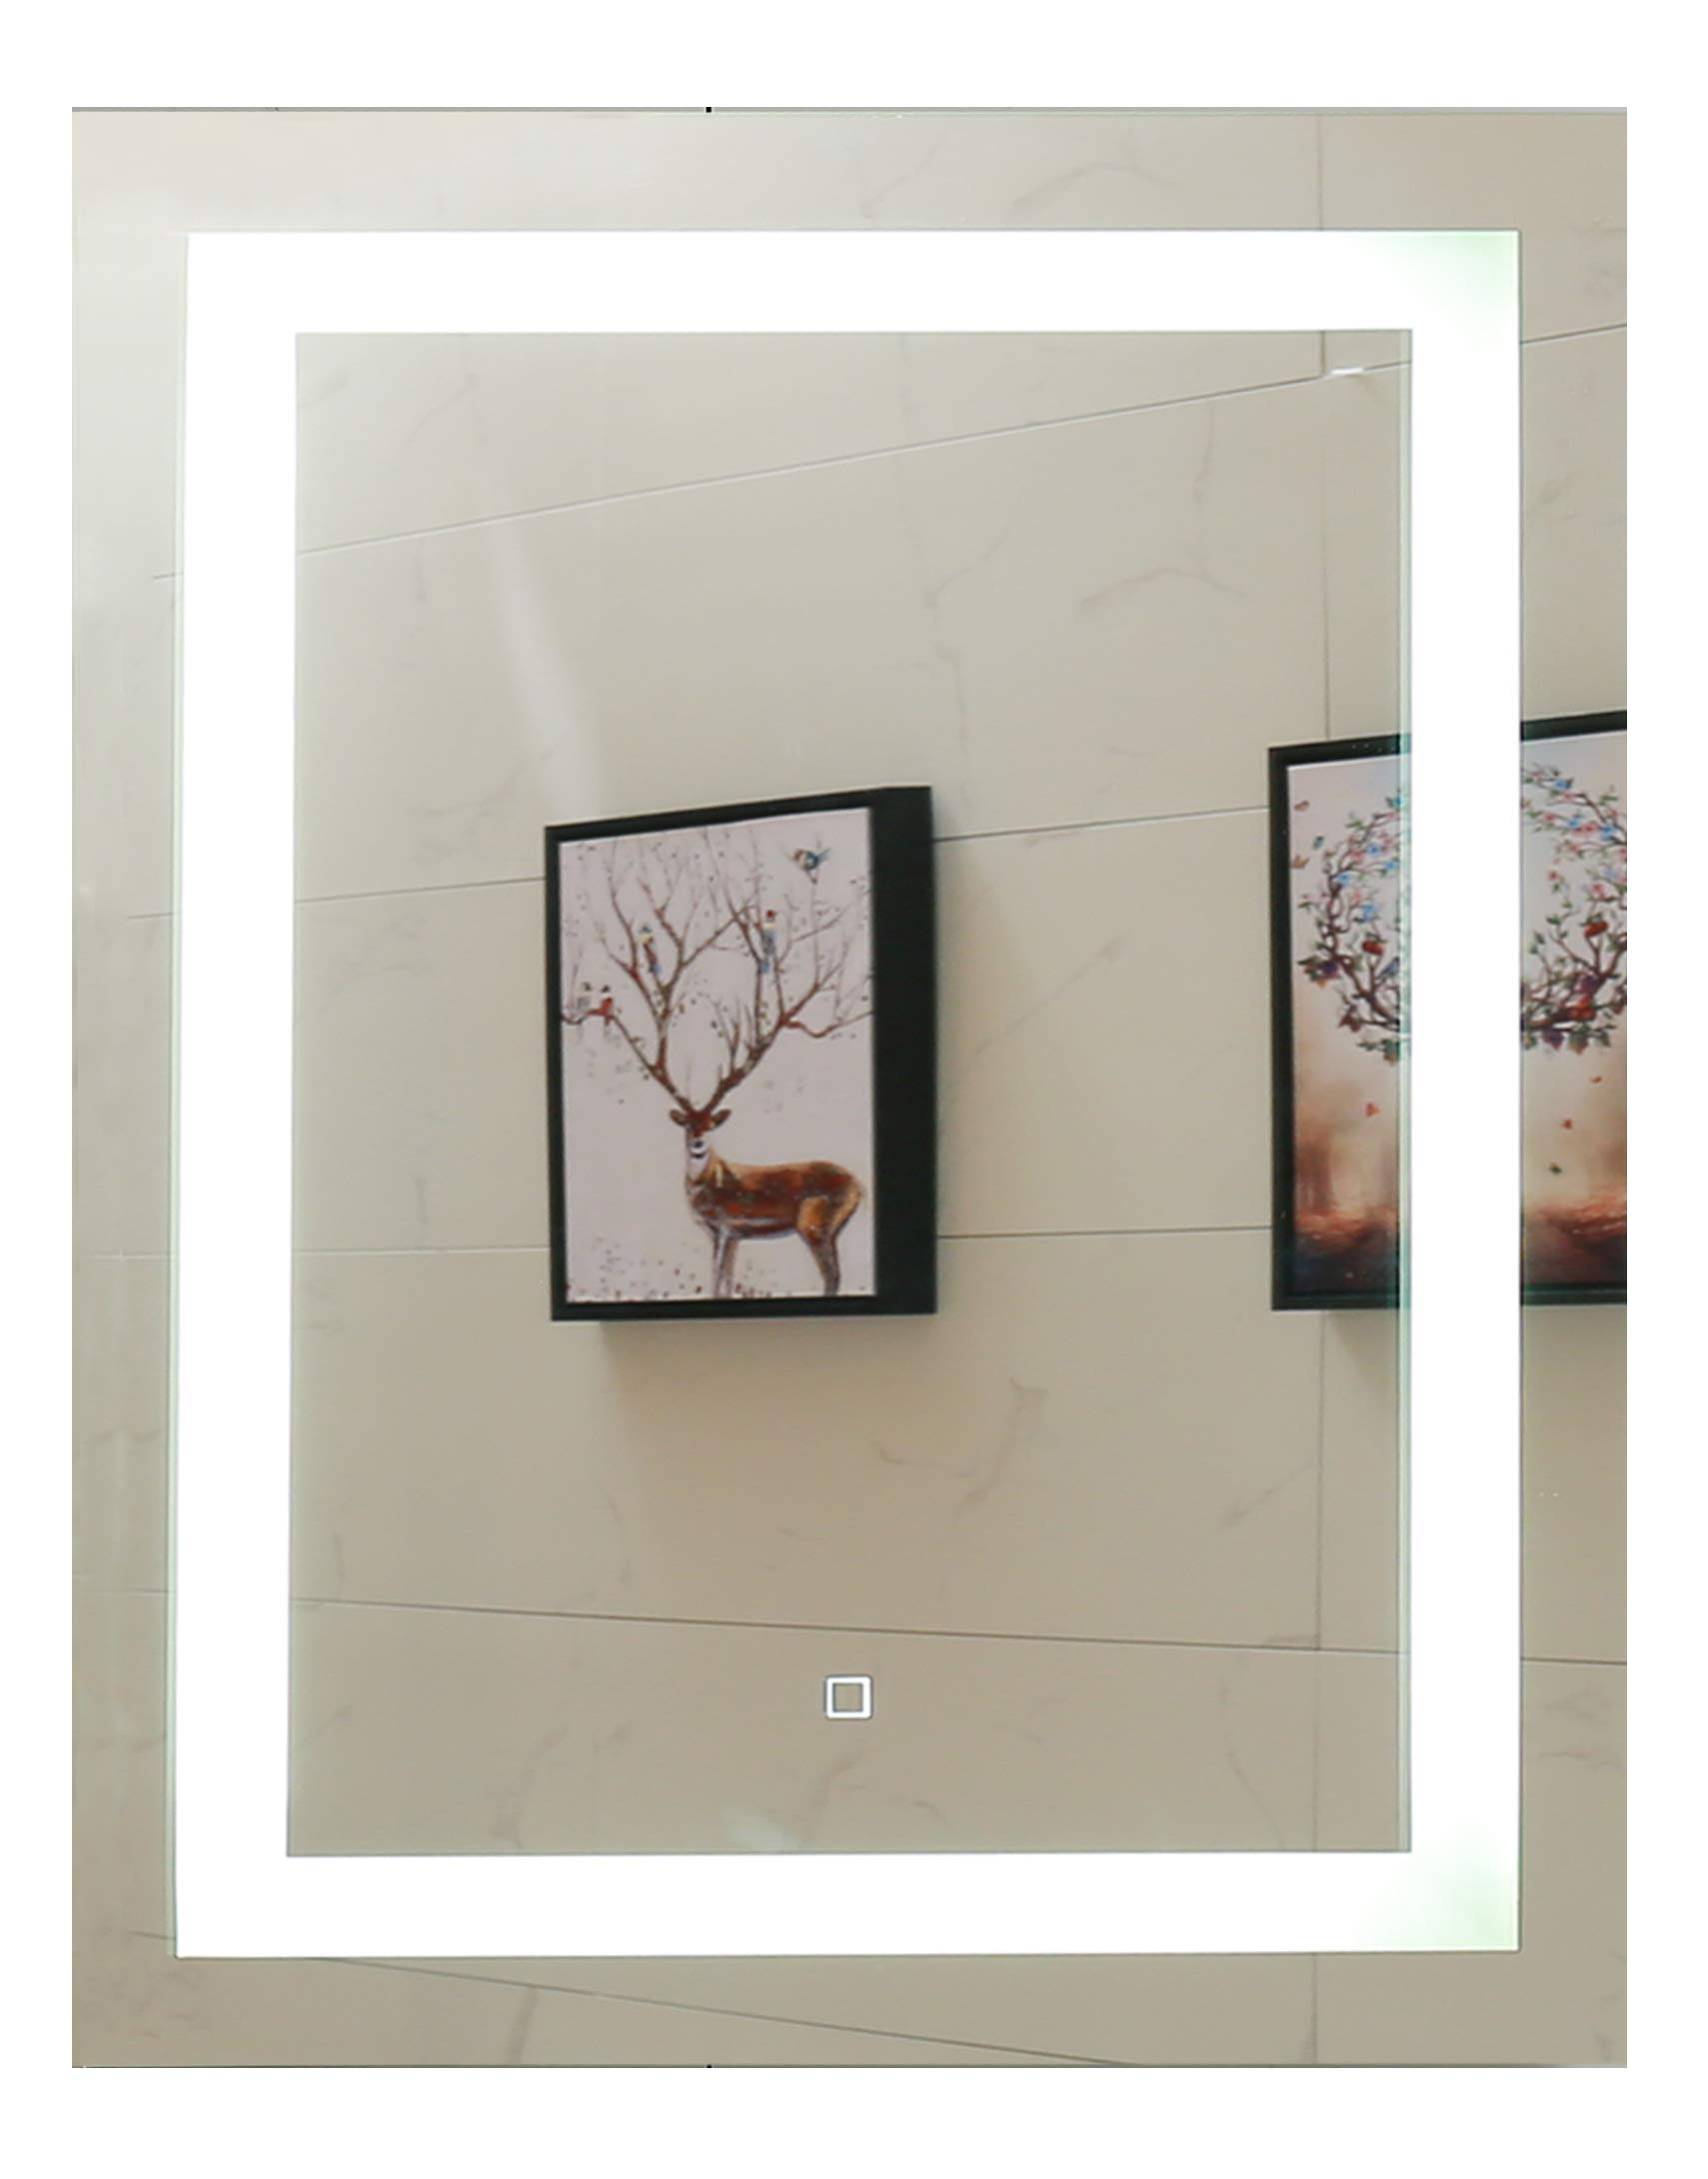 24X30 Inch LED Lighted Bathroom Mirror with Dimmable Touch Switch (GS099D-2430)(24x30 inch New)